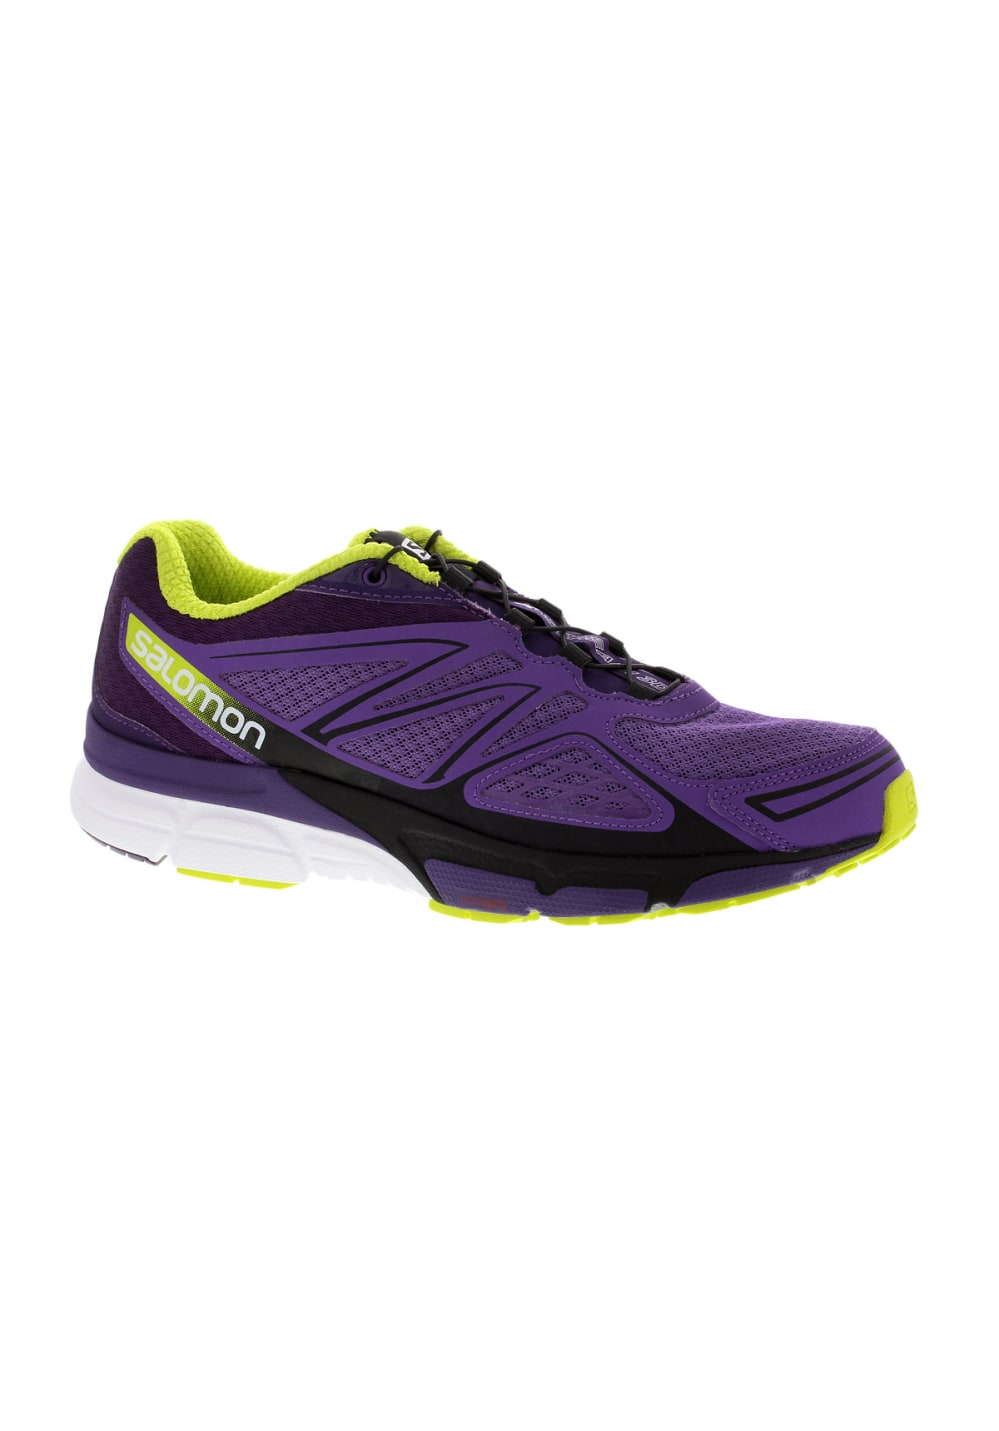 ccf2c6baee6e Next. -60%. This product is currently out of stock. Salomon. X-Scream 3D - Running  shoes for Women